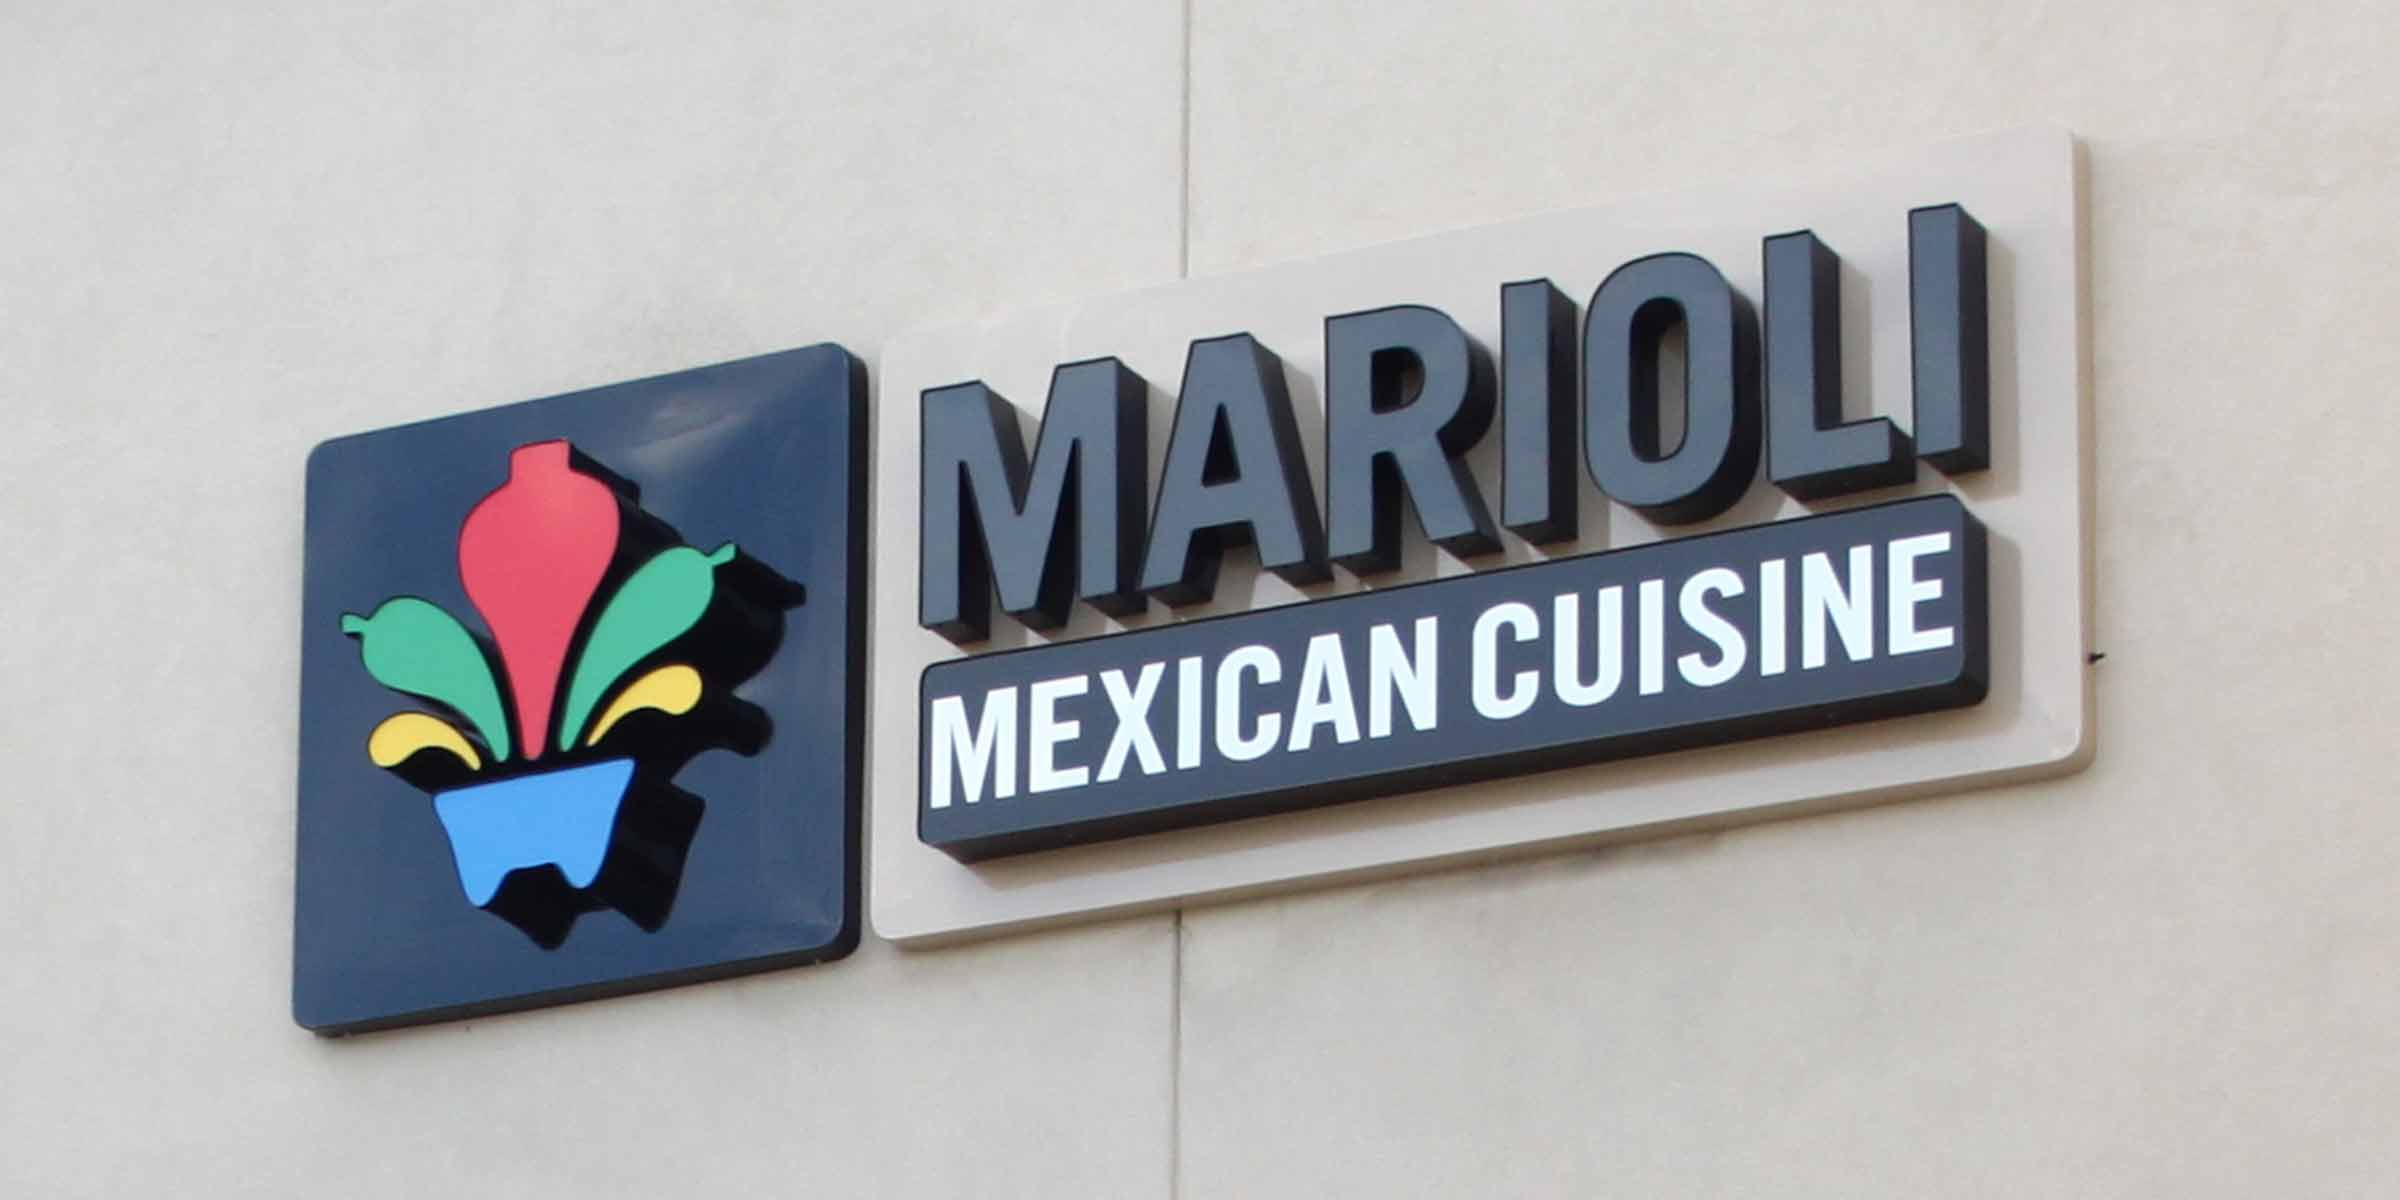 photo of Marioli Mexican Cuisine sign